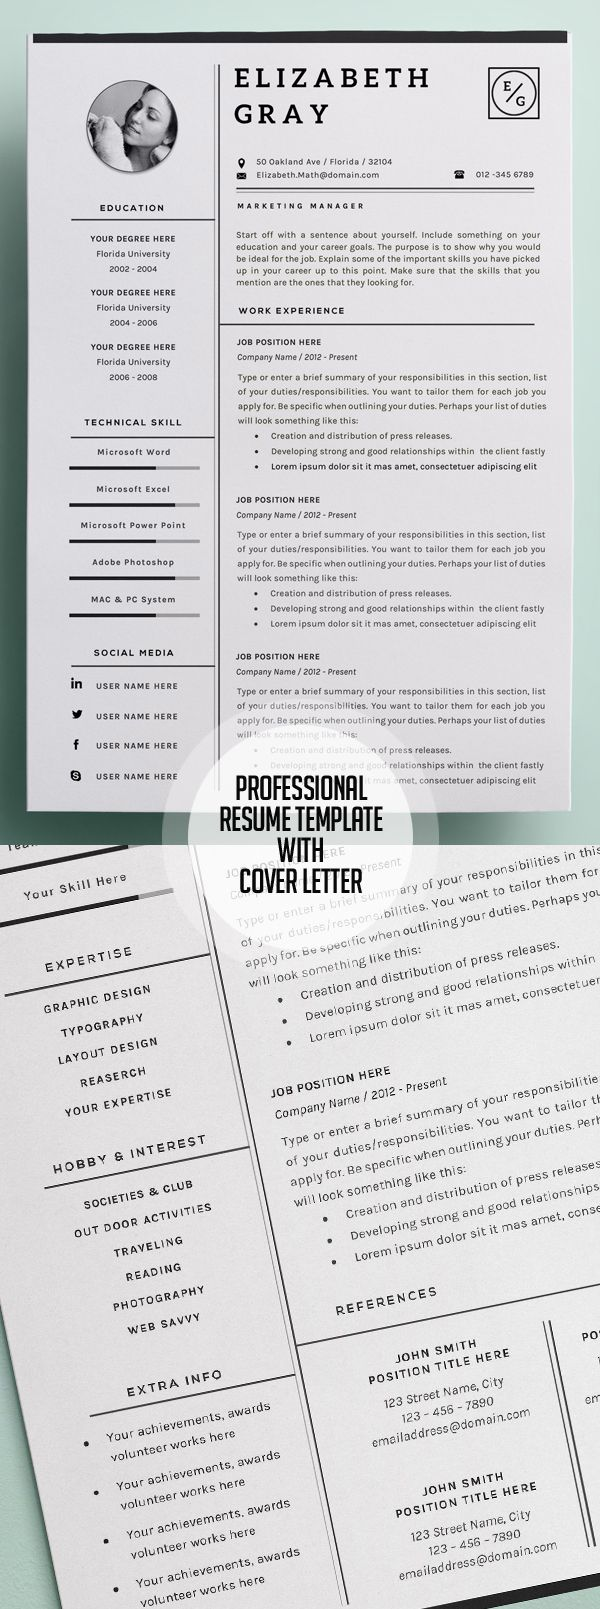 Picnictoimpeachus  Splendid  Resume Ideas On Pinterest  Resume Resume Templates And  With Outstanding Professional And Modern Resume Template With Page Cover Cvtemplate With Lovely Resume For Mcdonalds Also Sample Resume References In Addition Should I Include High School On Resume And Sample Resume Medical Assistant As Well As Paralegal Resume Skills Additionally Resume Builder Microsoft Word From Pinterestcom With Picnictoimpeachus  Outstanding  Resume Ideas On Pinterest  Resume Resume Templates And  With Lovely Professional And Modern Resume Template With Page Cover Cvtemplate And Splendid Resume For Mcdonalds Also Sample Resume References In Addition Should I Include High School On Resume From Pinterestcom